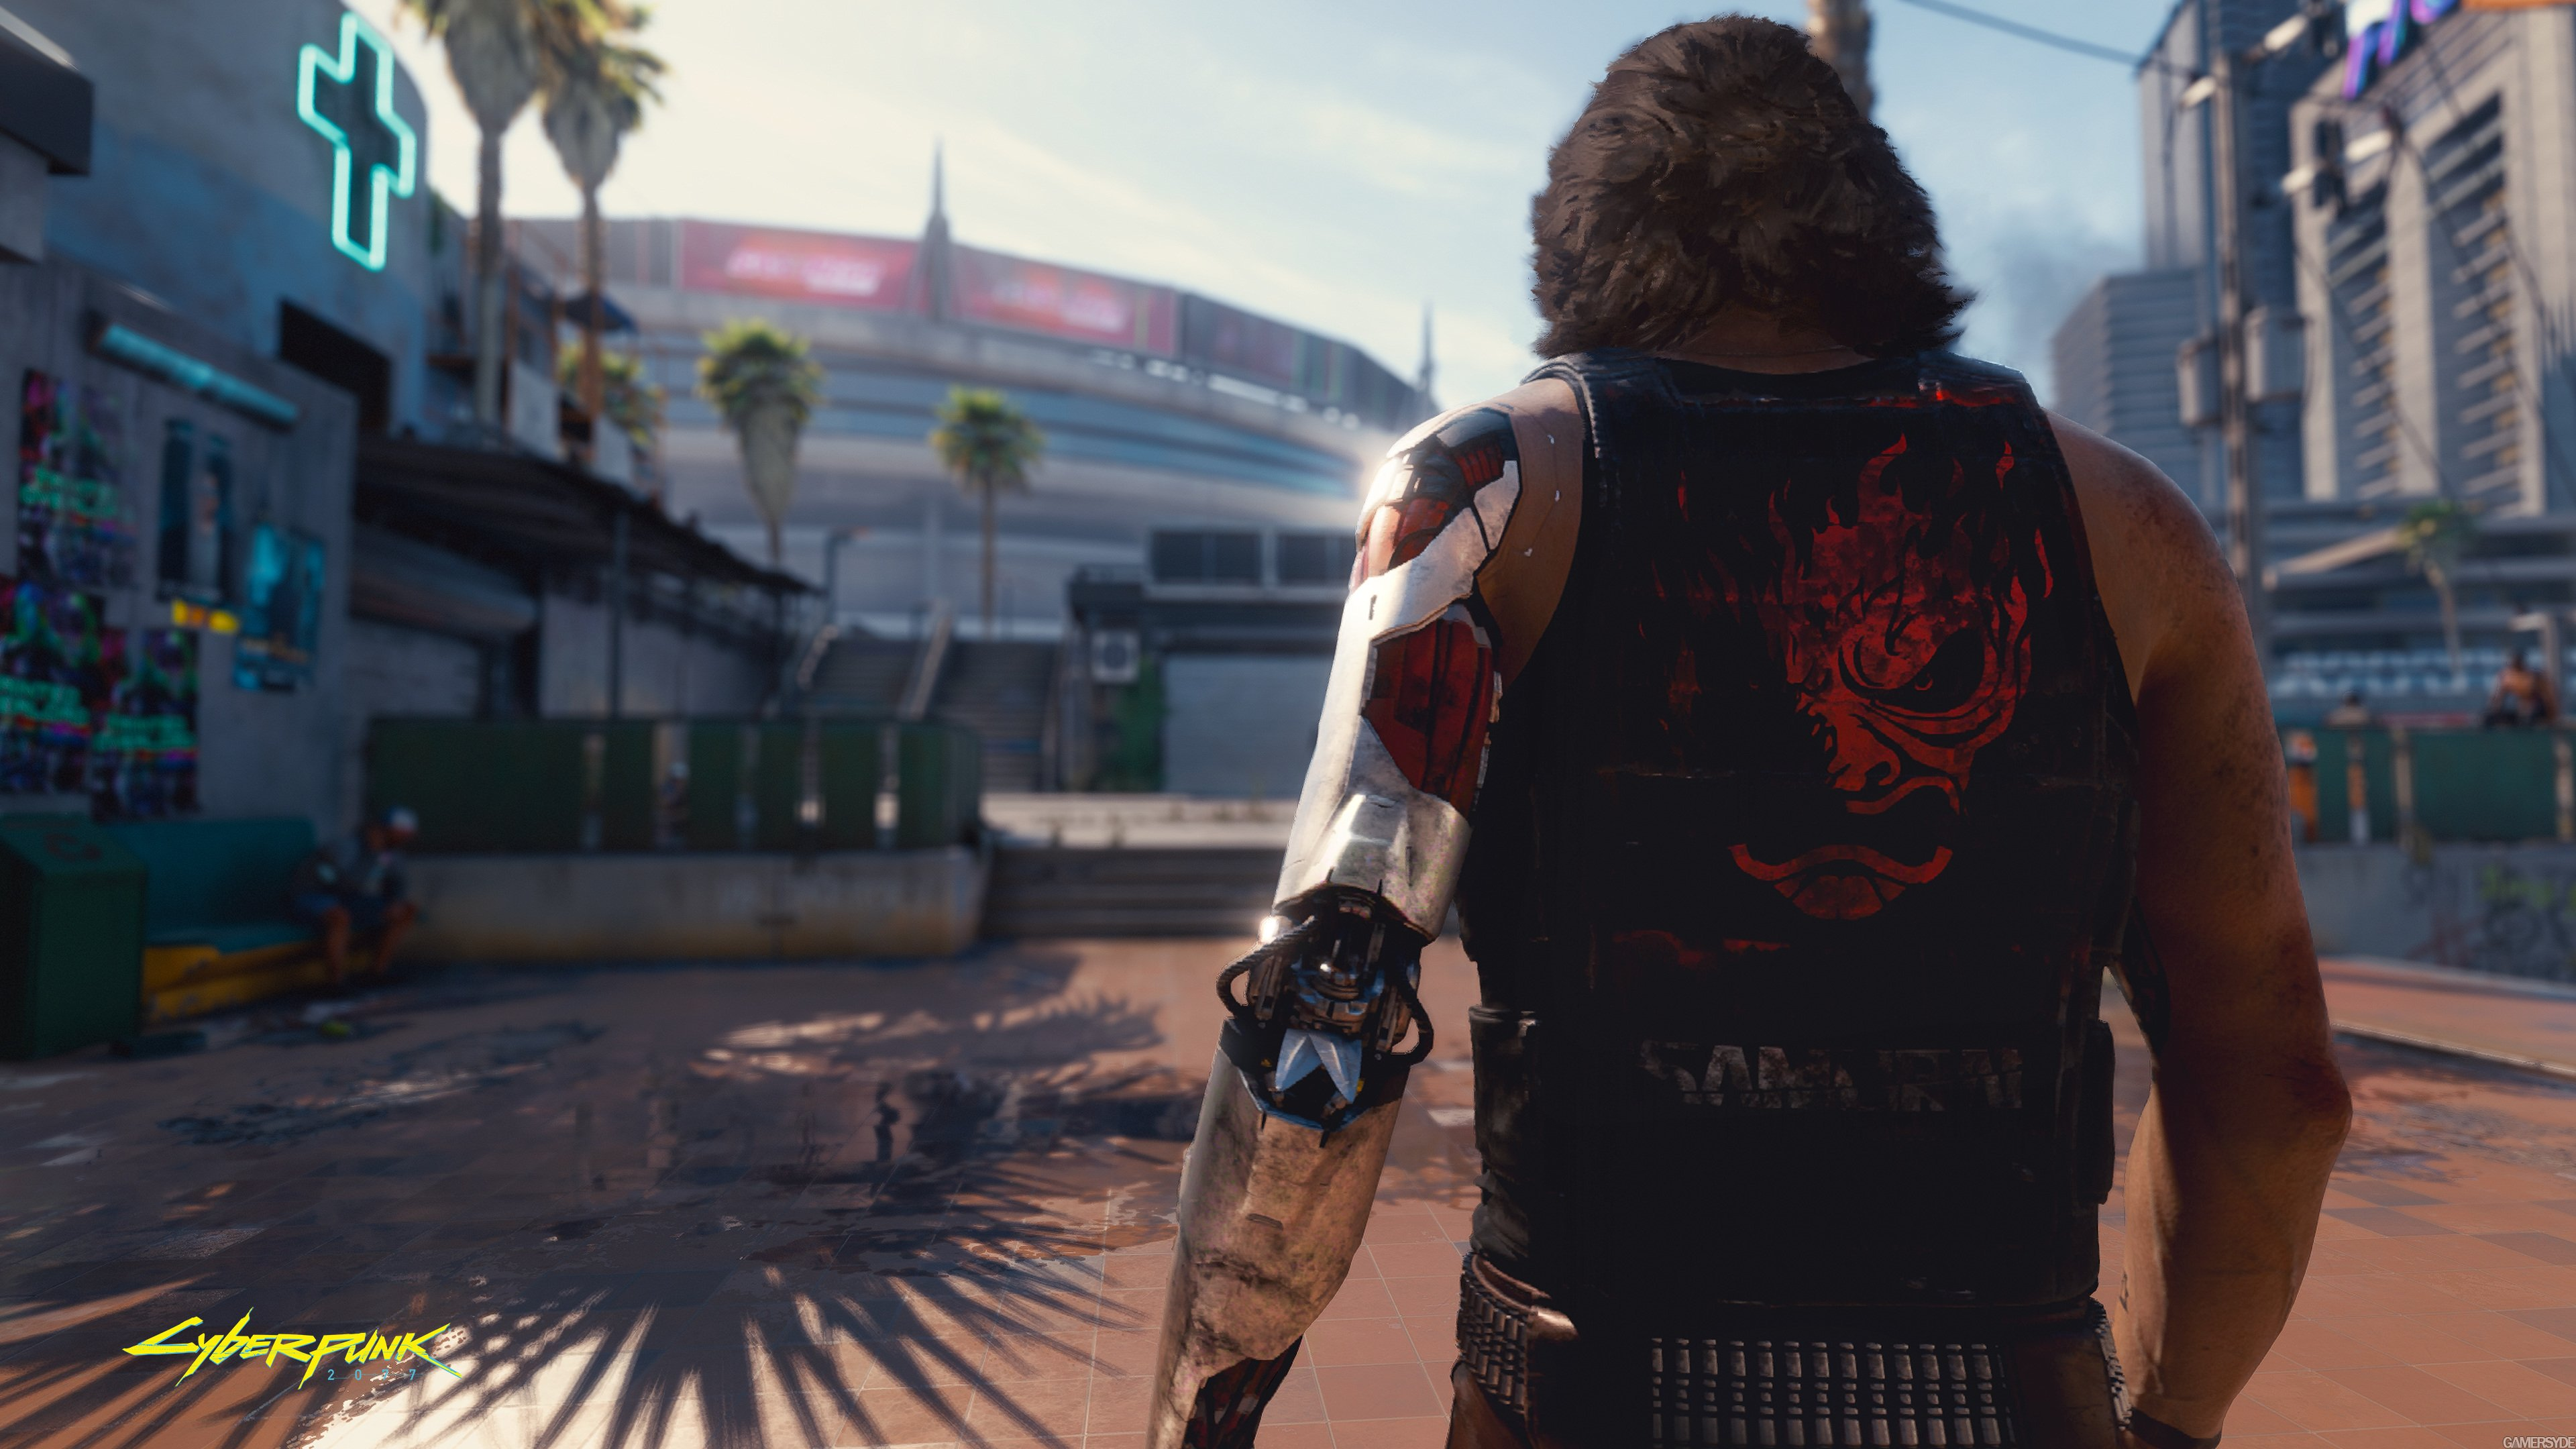 Cyberpunk 2077 Dev Diary Asks Players To Discover Who They Are